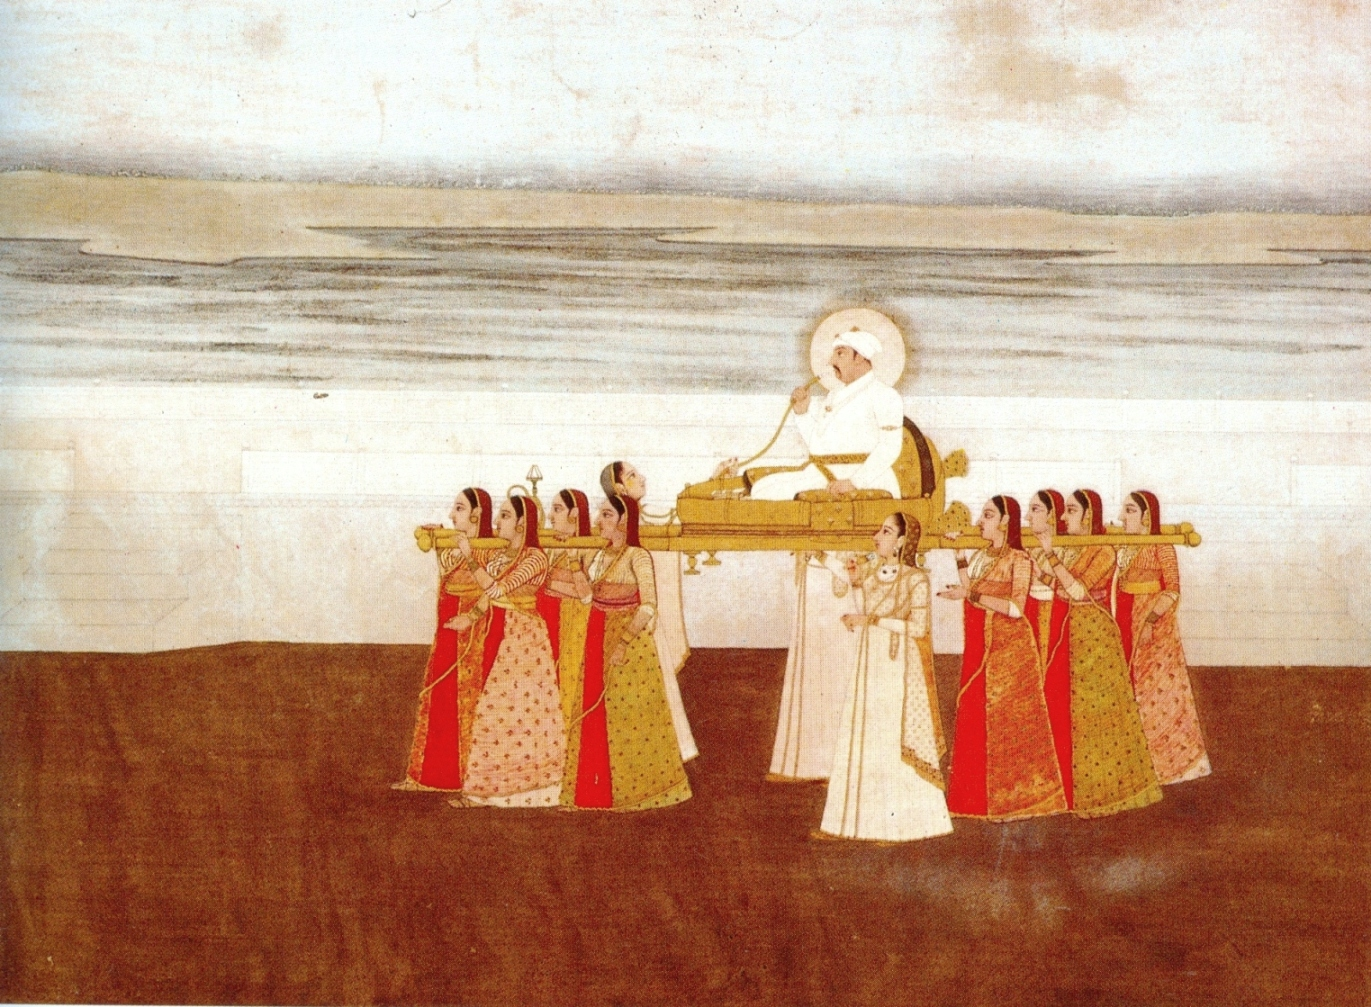 Emperor Muhammad Shah carried in a palanquin by women, circa 1735, collection Kasturbhai Lalbhai, Ahmedabad. Photo credit: Wikimedia Commons [Public Domain].